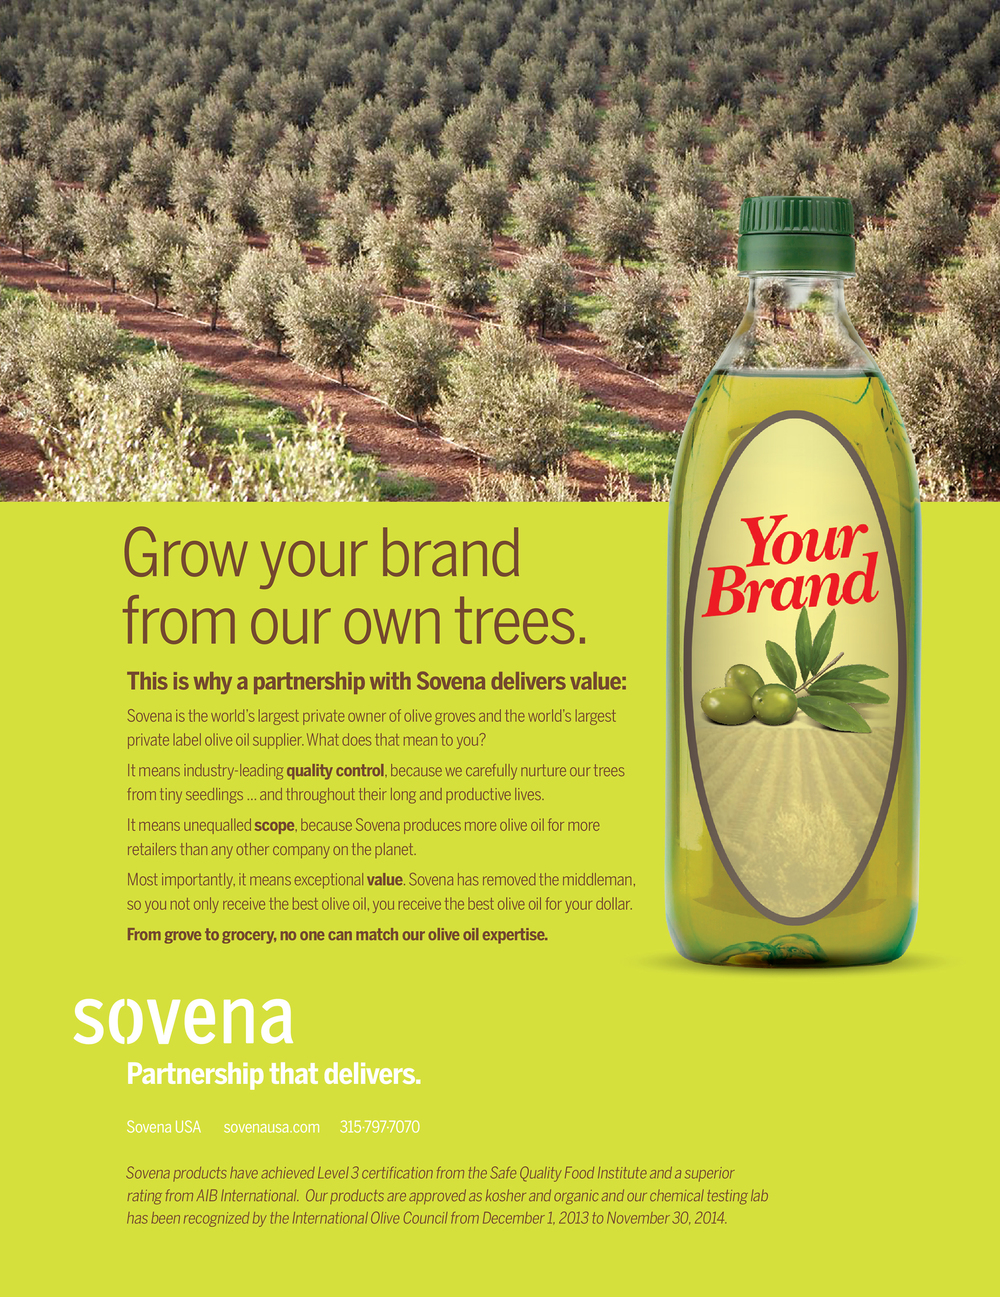 Private label services ad campaign for Sovena - the 2nd largest producer of olive oil in the world.